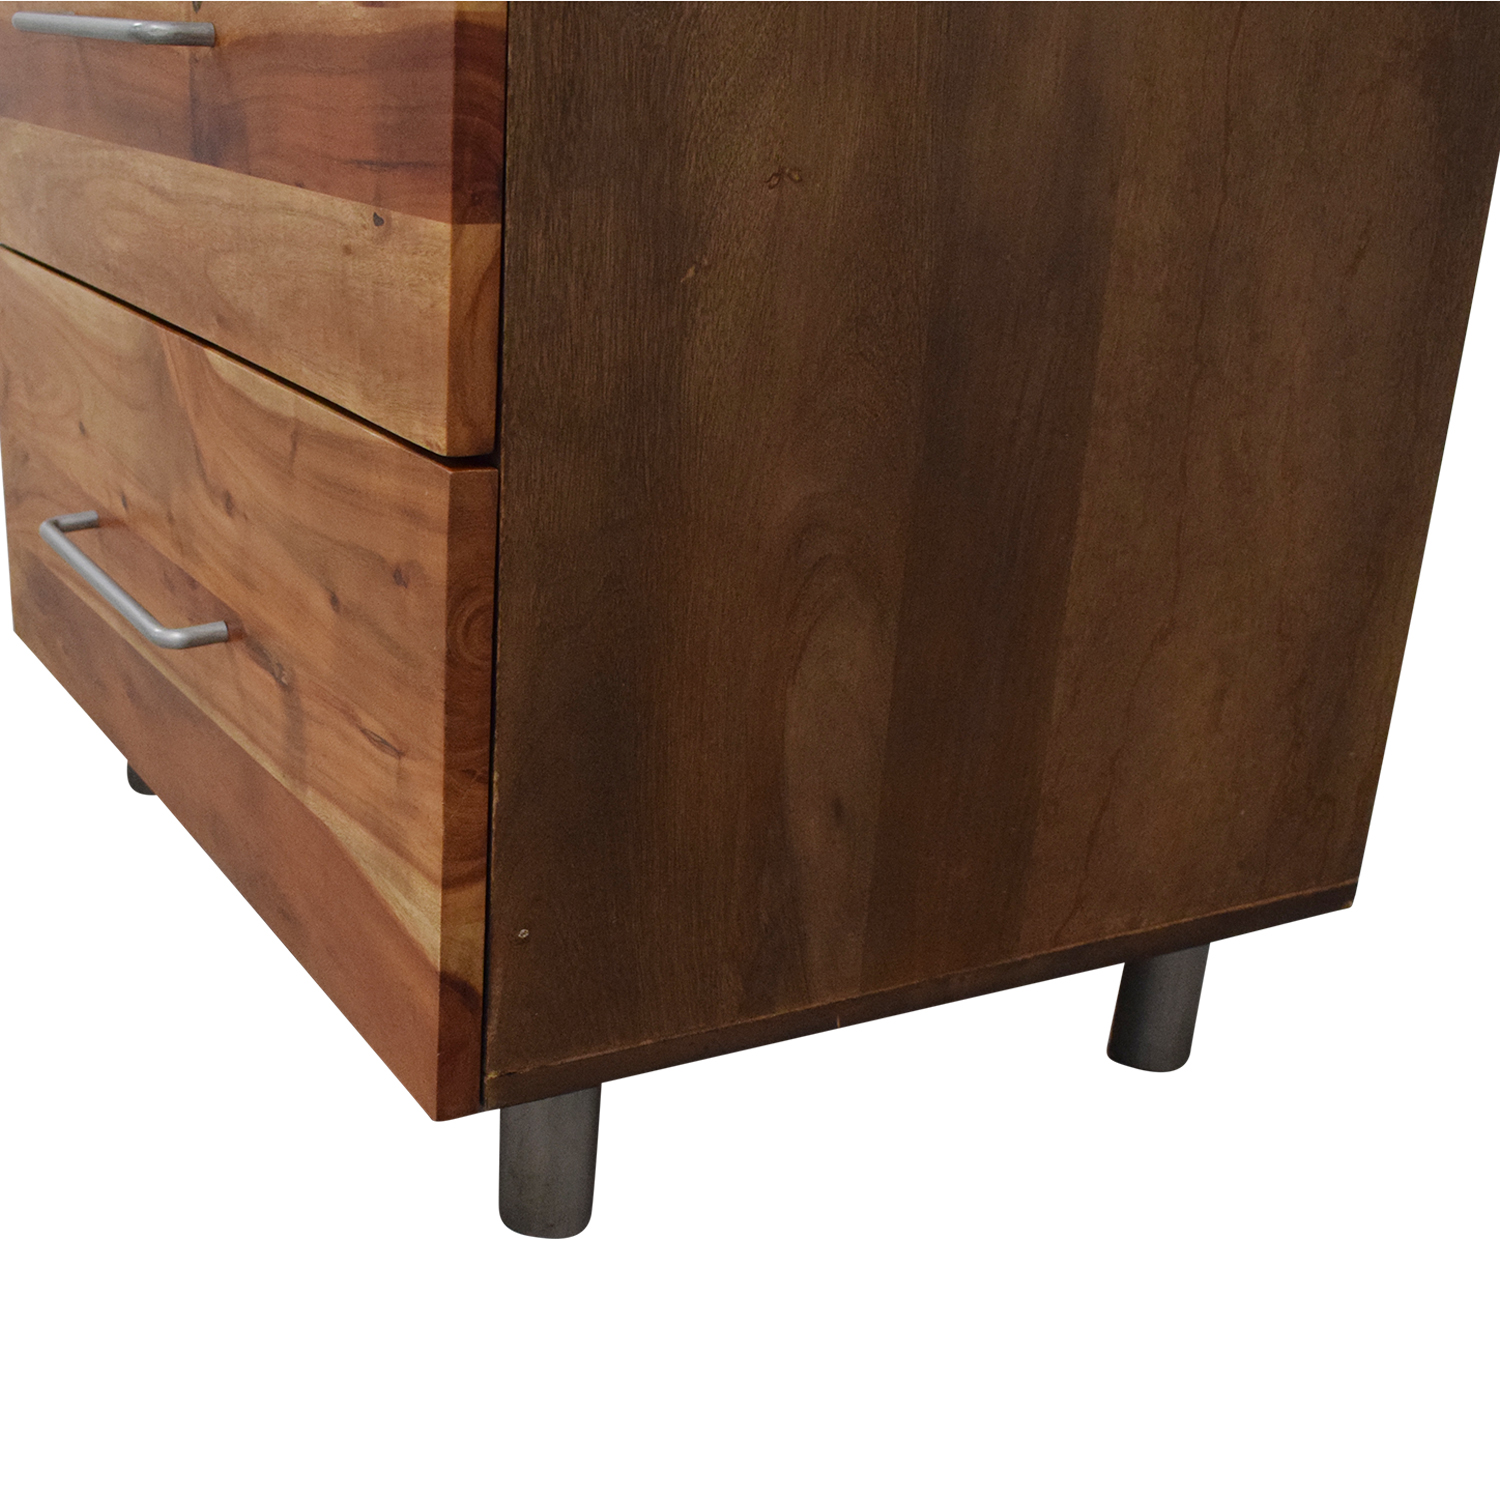 buy CB2 Rustic Junction Tall Chest CB2 Dressers